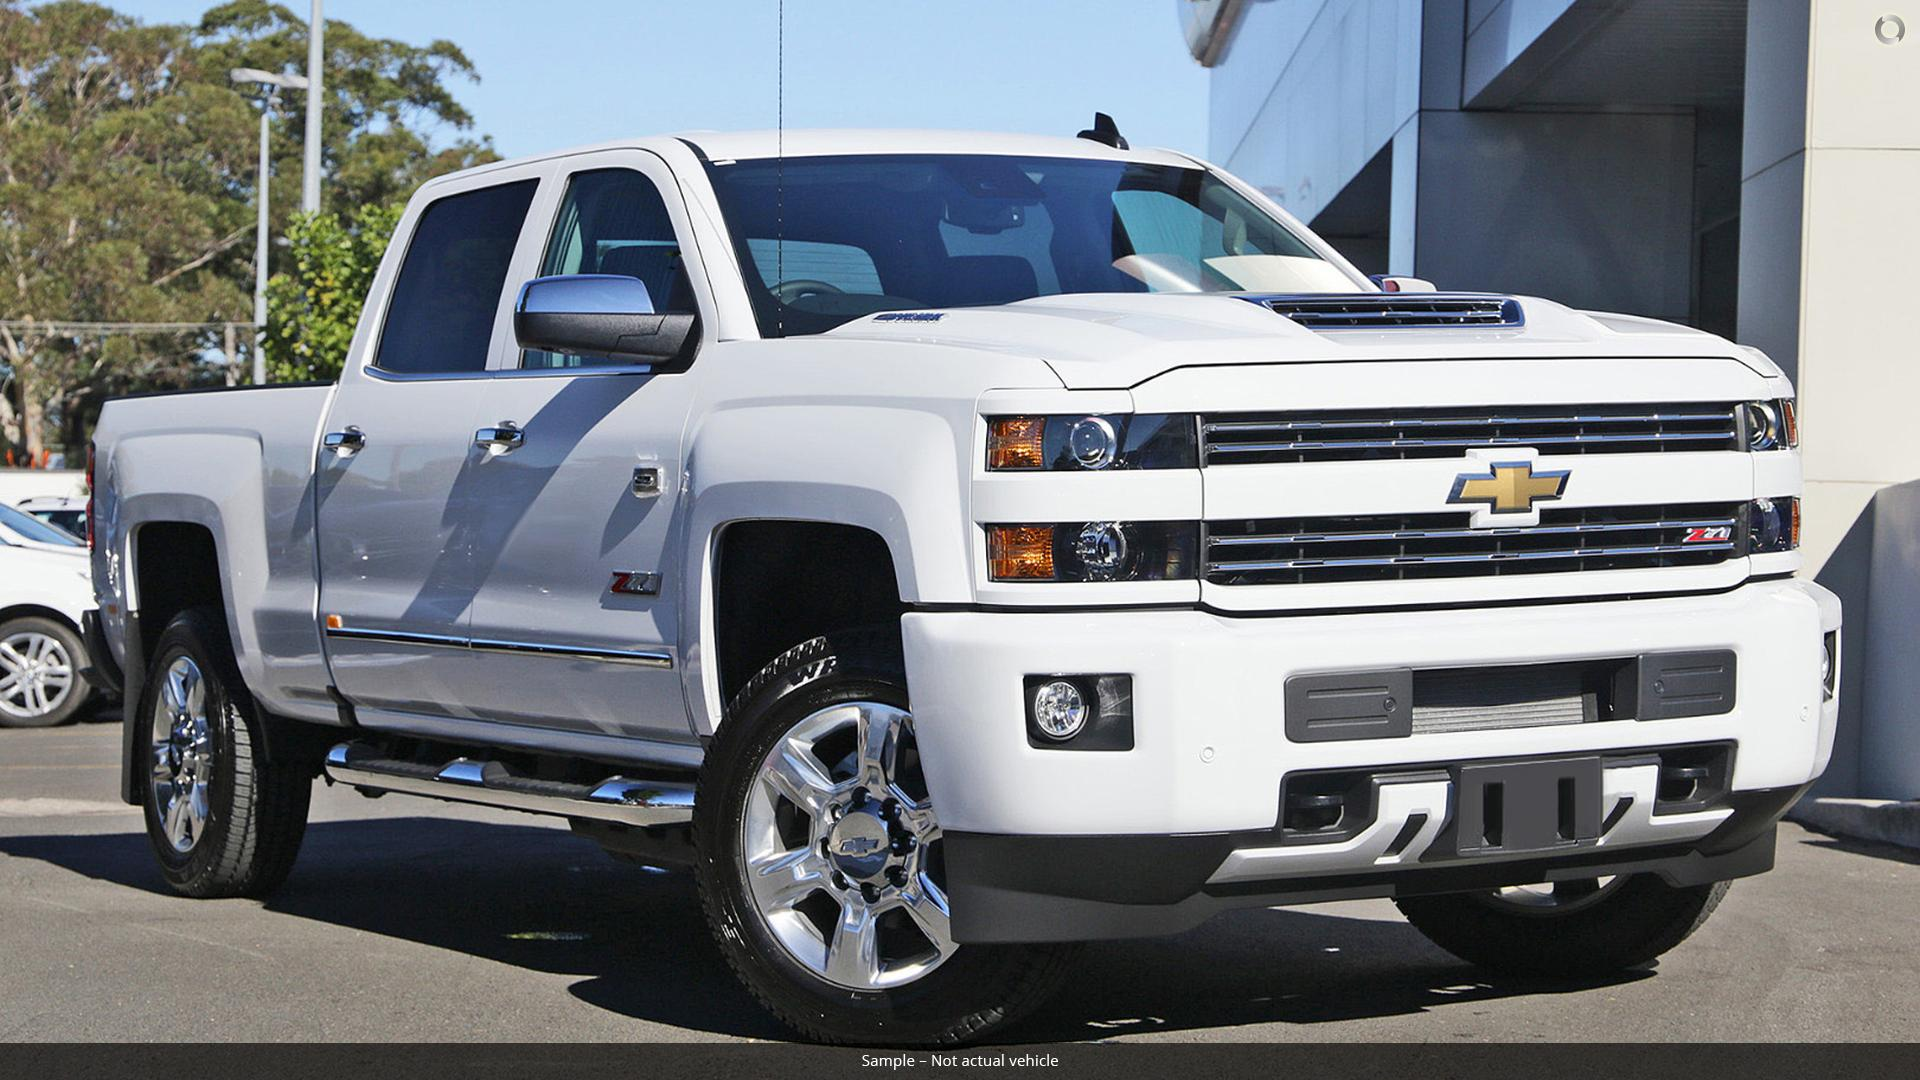 2019 Chevrolet Silverado 2500HD LTZ Custom Sport Edition C/K25